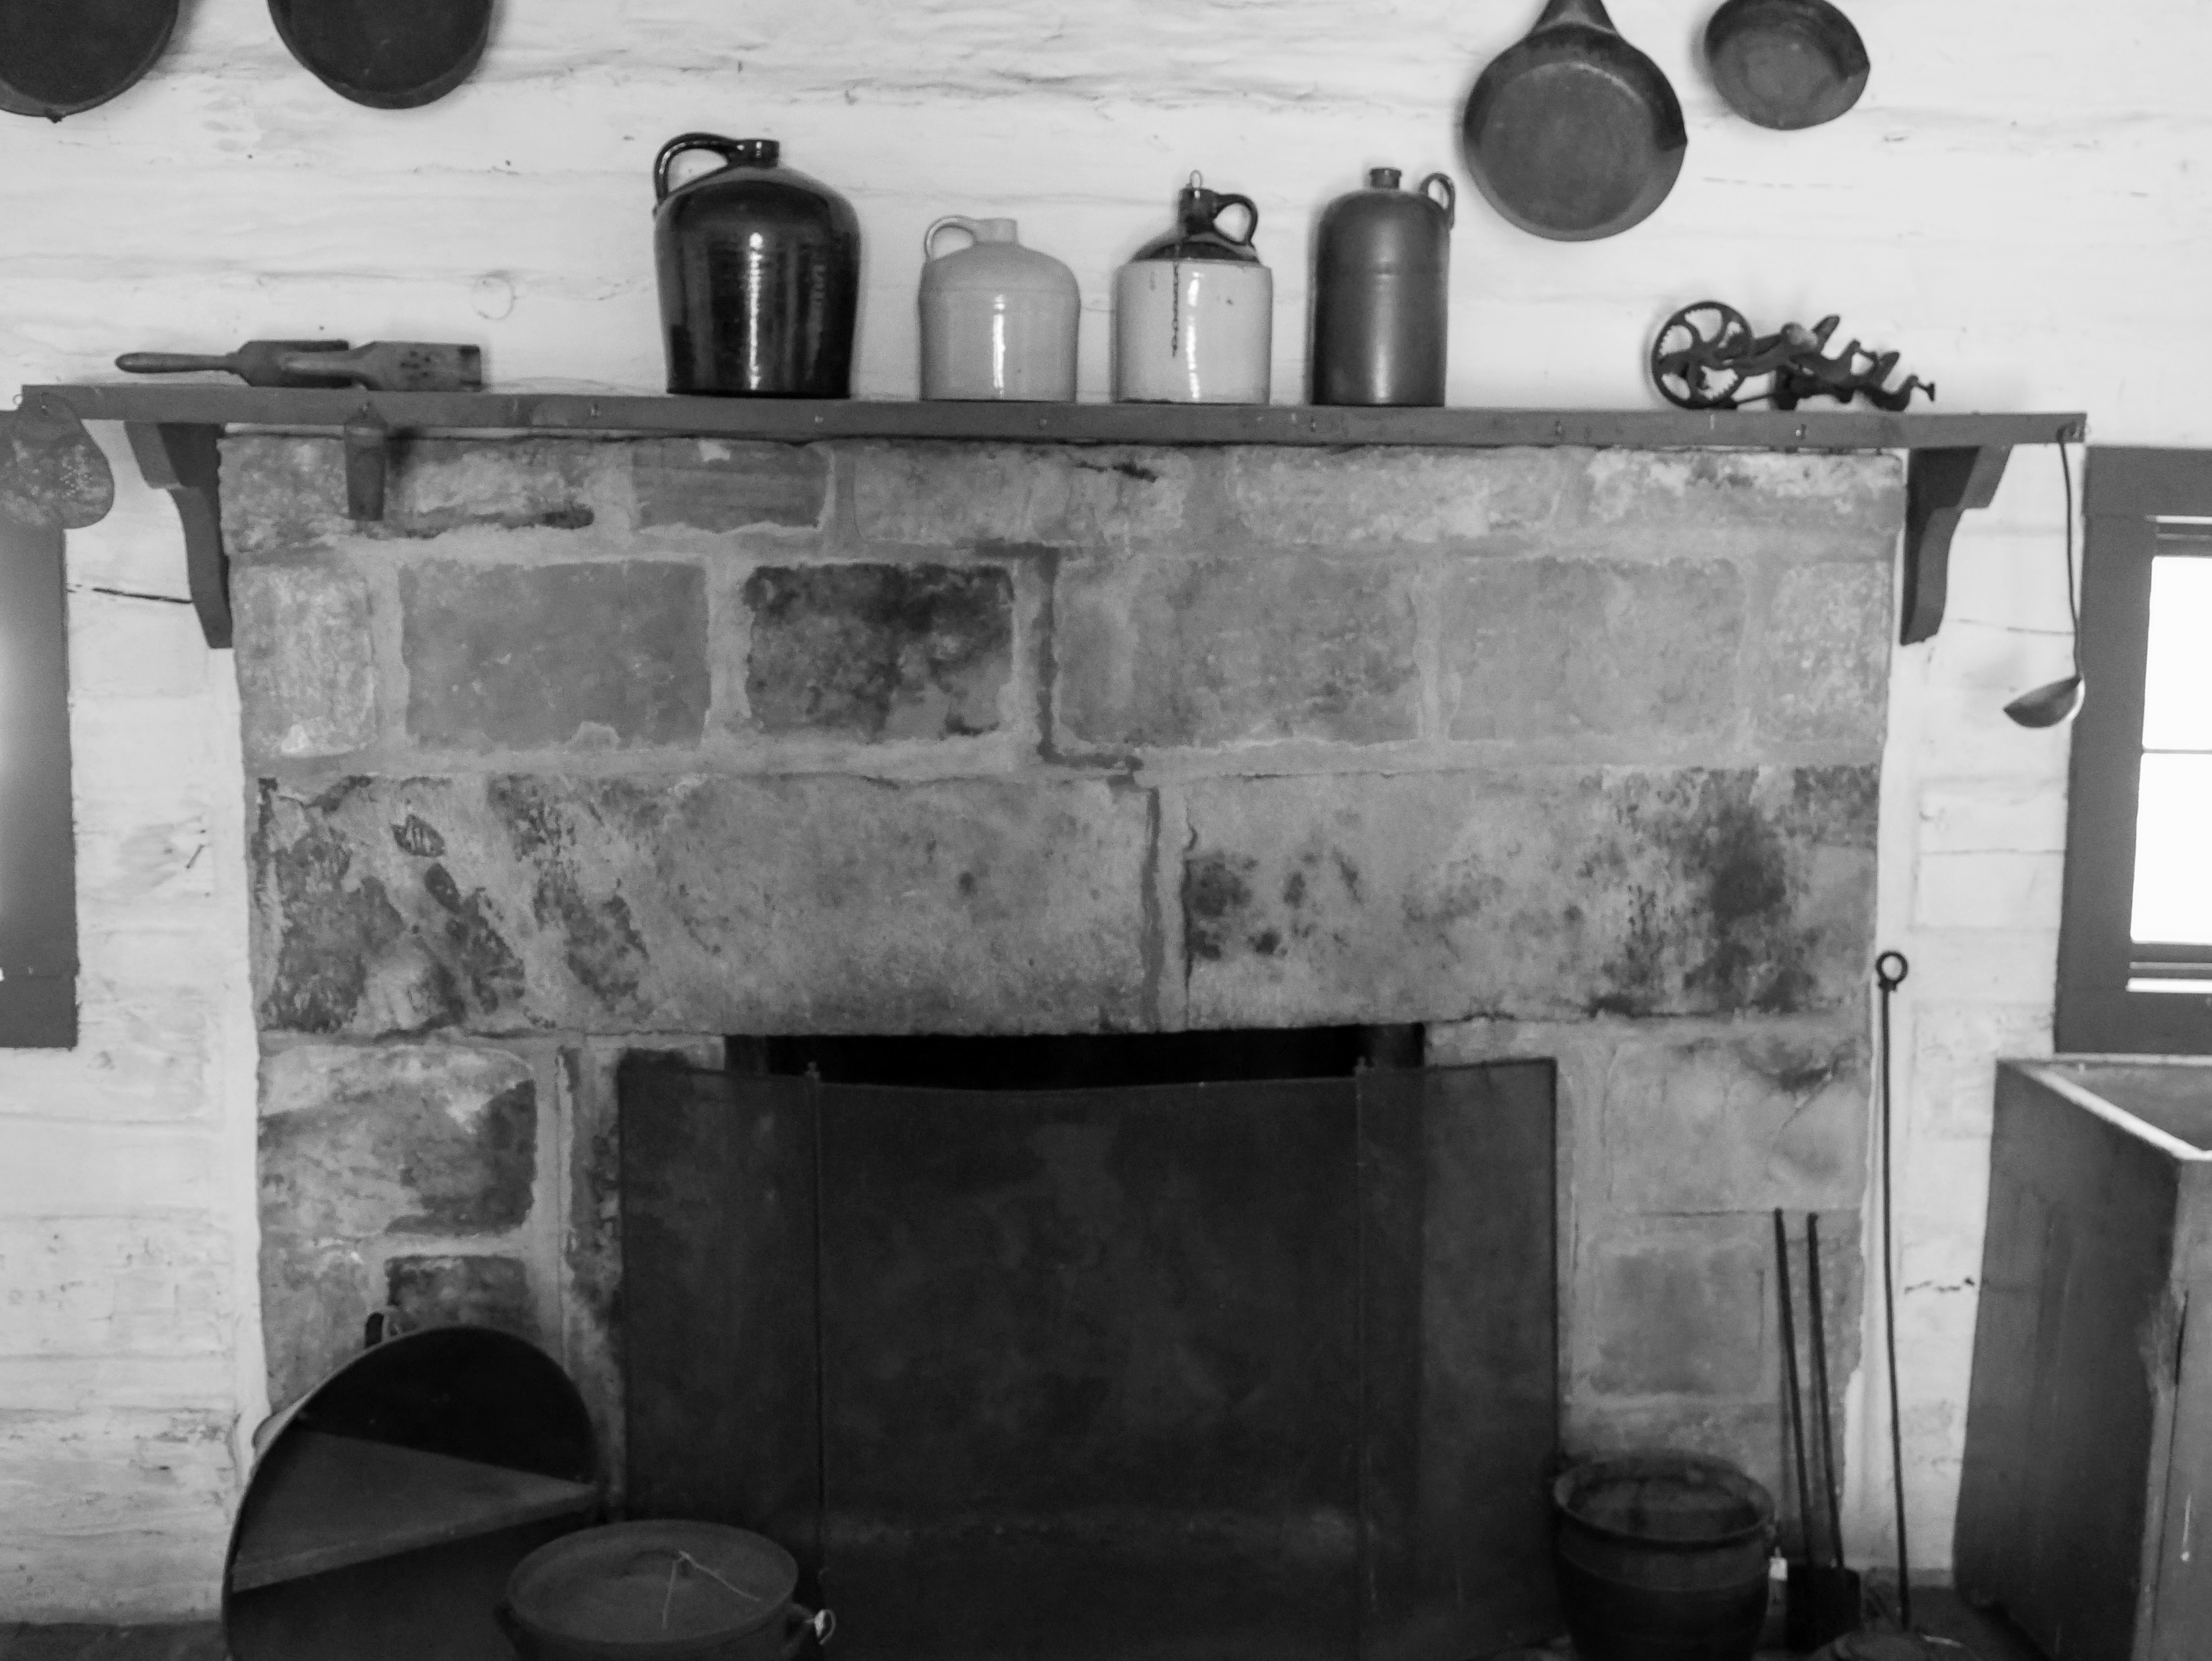 A large stone fireplace with iron screen is in the middle of the back wall of the kitchen. Several large iron Dutch ovens and fireplace utensils are set at each side. Atop the wooden mantle sit several large ceramic jugs. Iron skillets are hung barely out of frame above the fireplace.